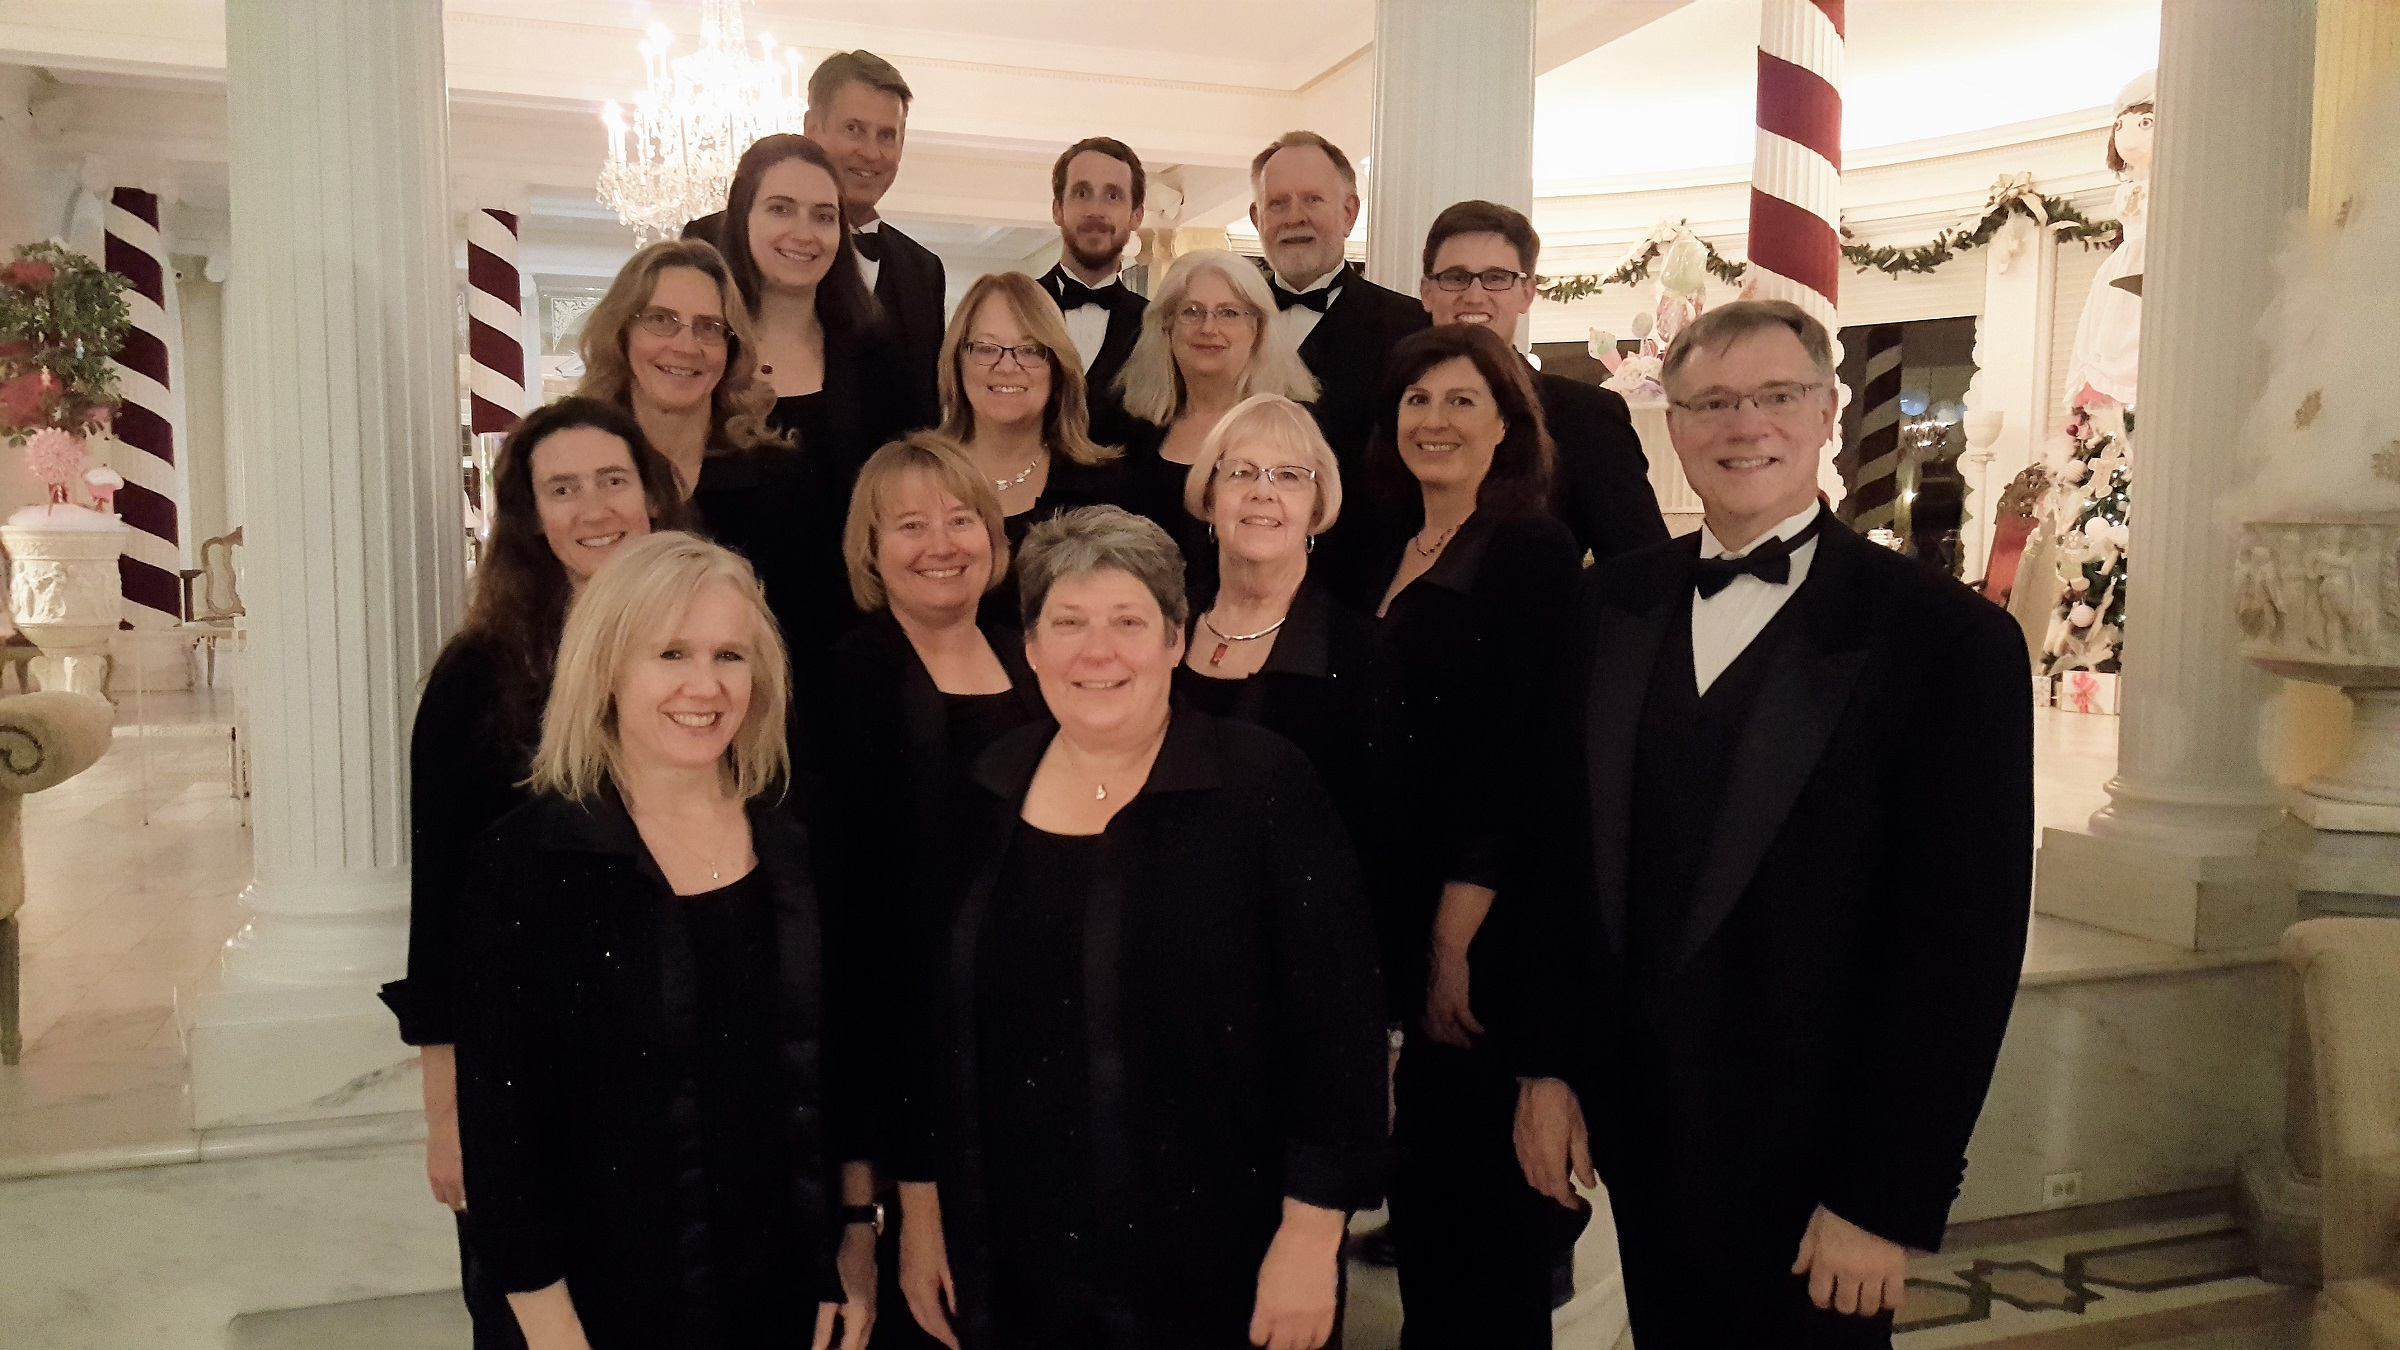 Rocky Mountain Ringers Perform for Holiday Gathering at the Governor's Residence 2017